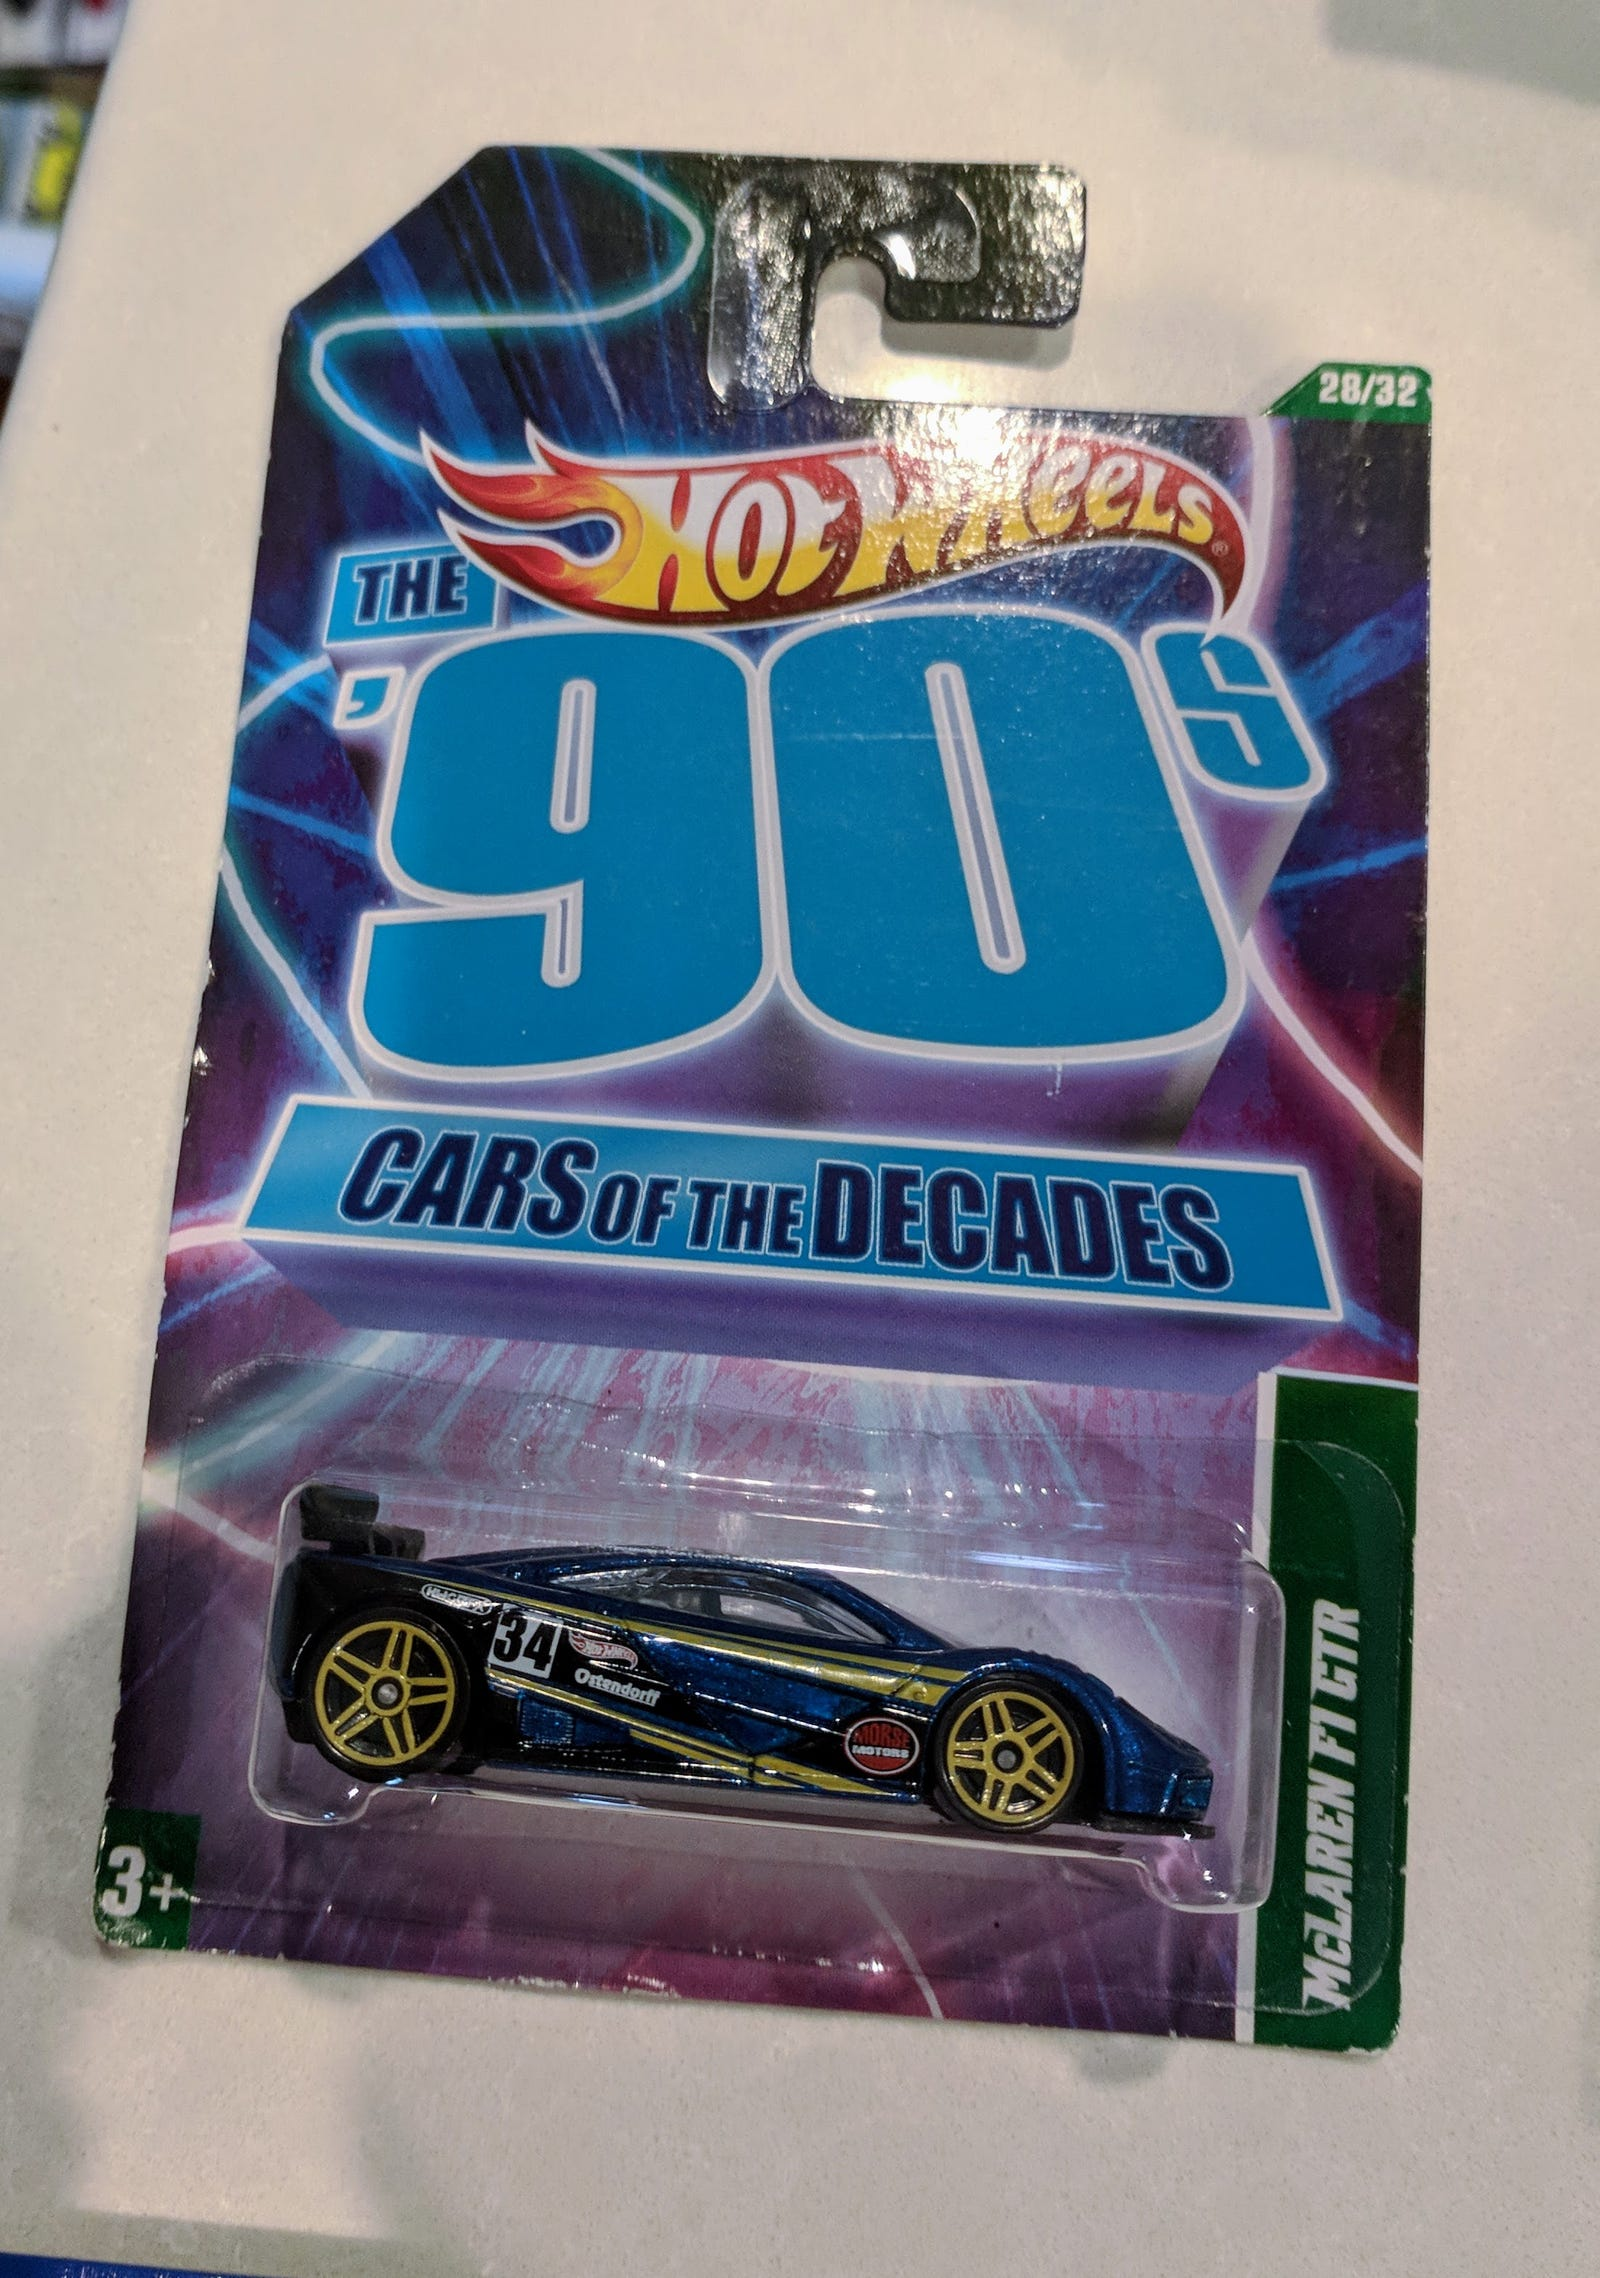 Lot 18: British Invasion - $25 for 15 cars including the elusive Card of the Decades F1...